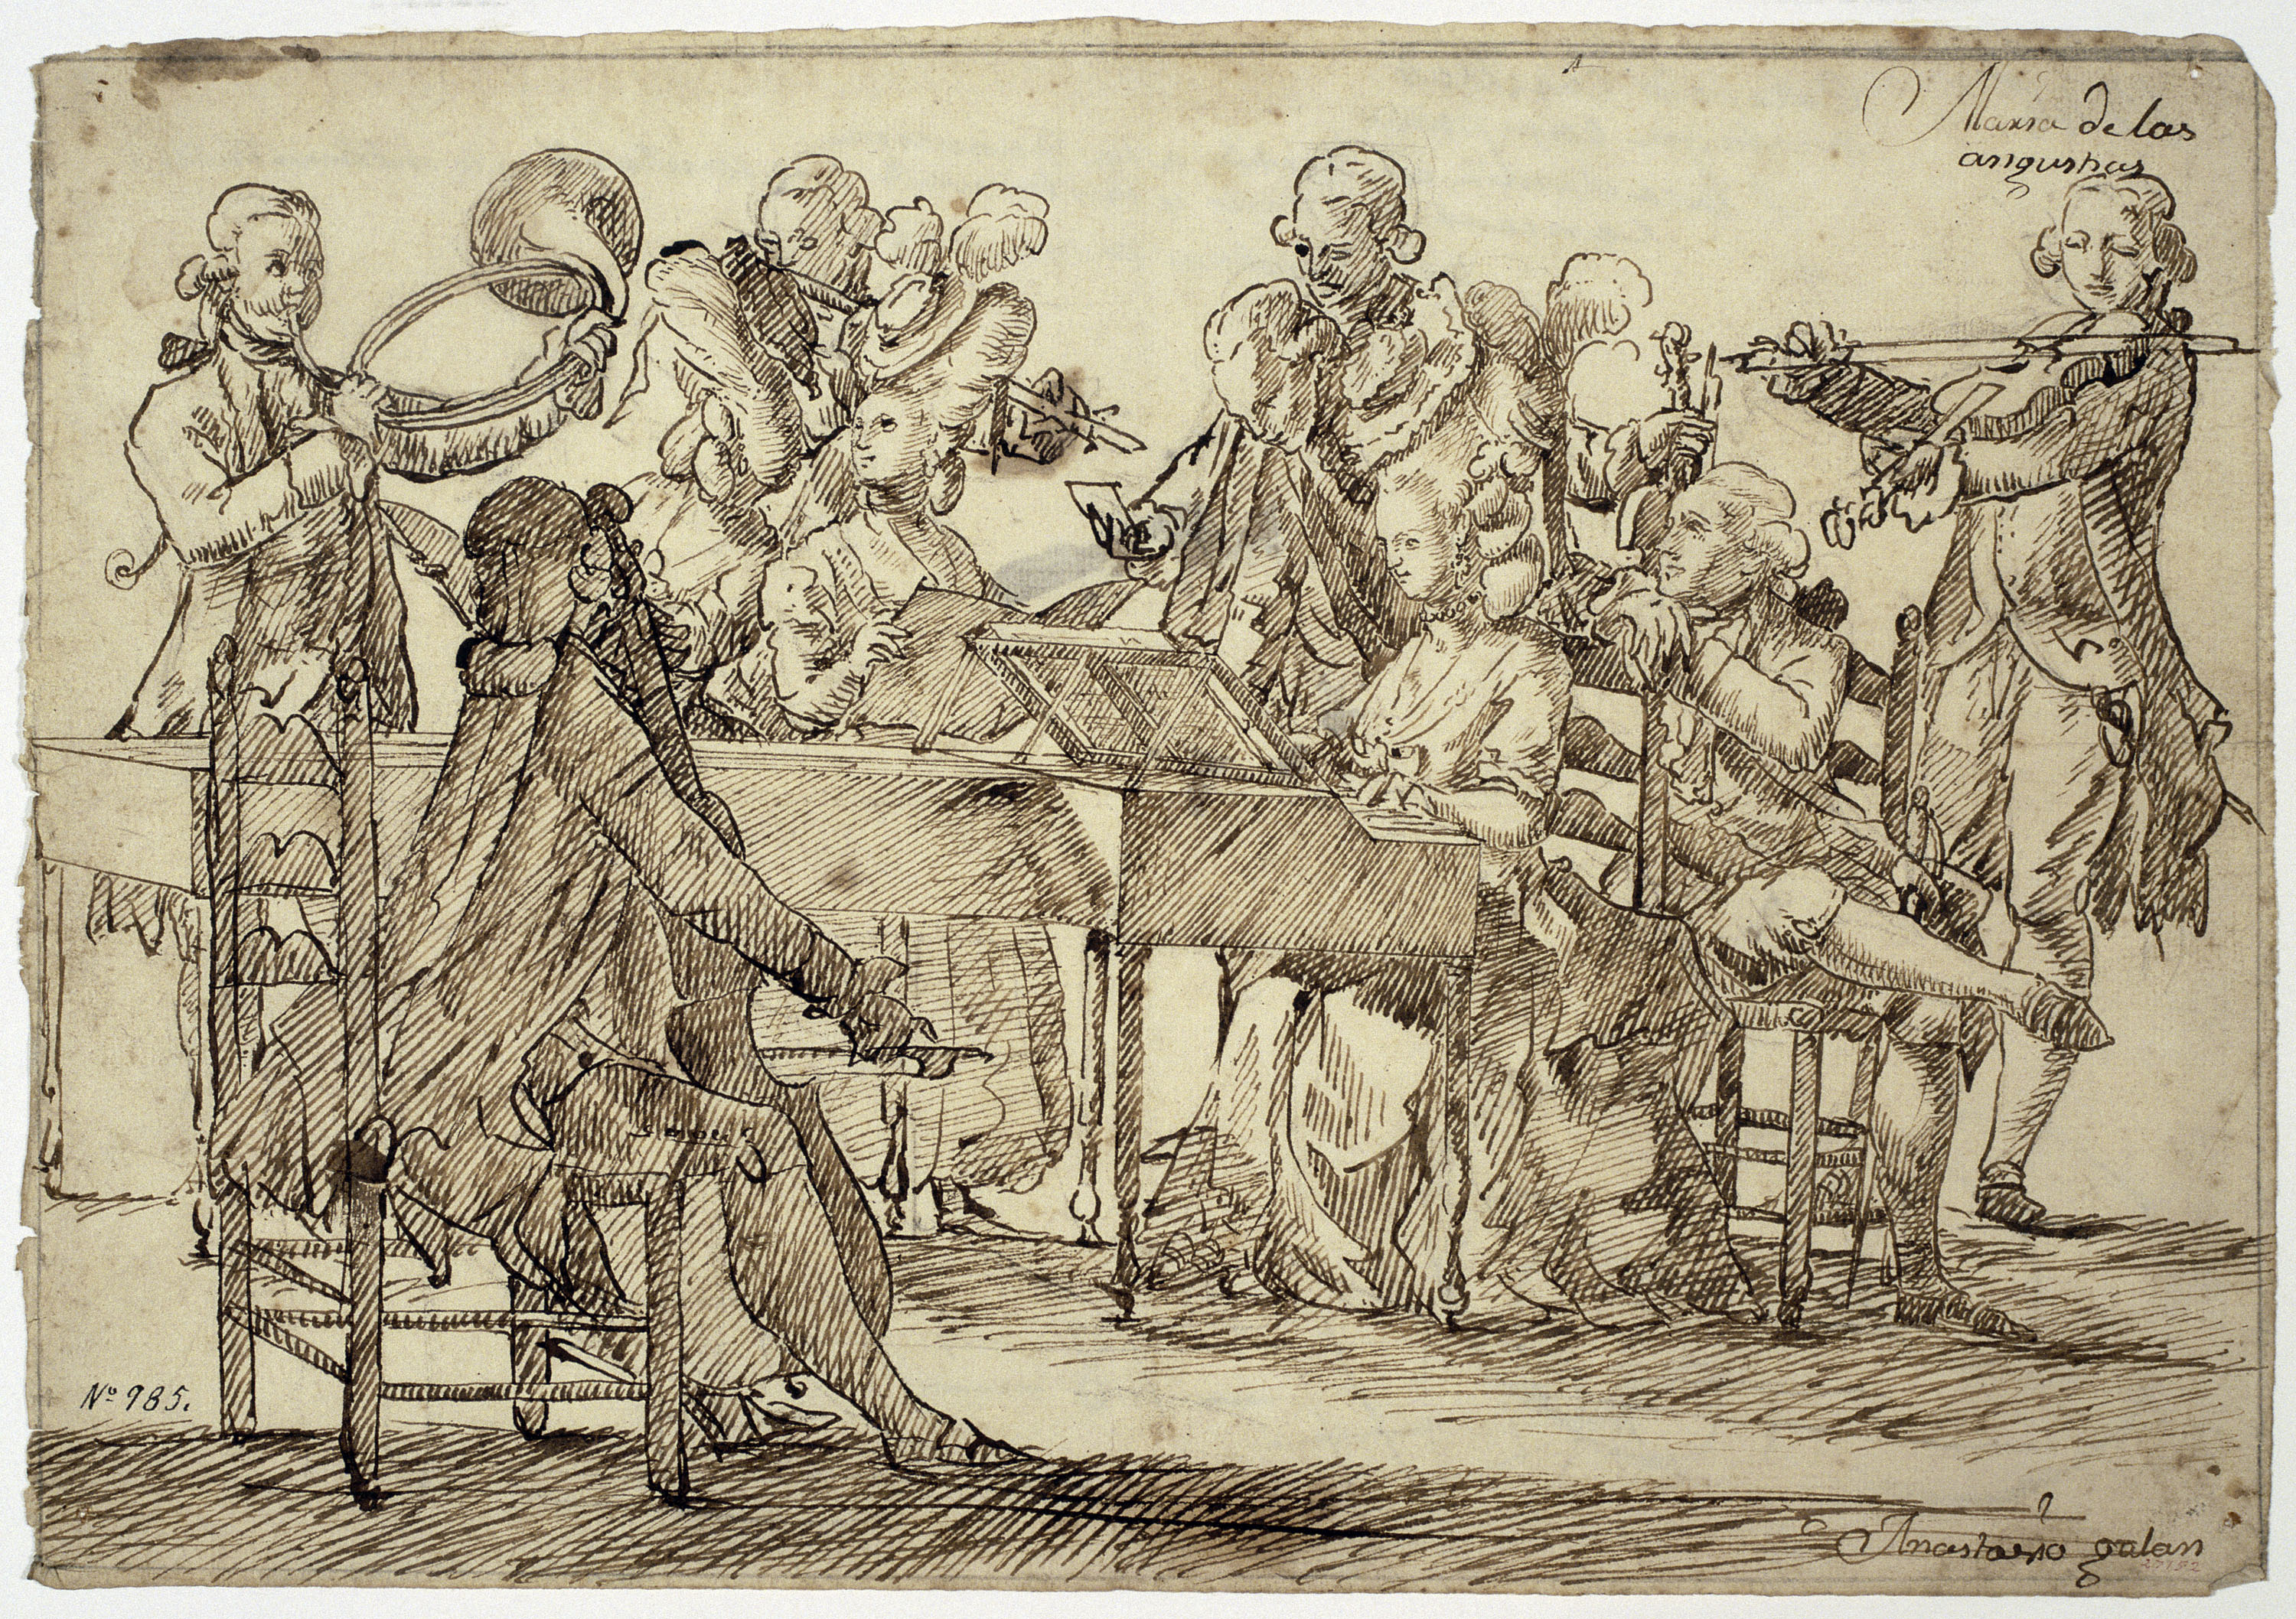 Antoni Casanovas Torrents - The Academy of theater in Lent. Concert of voices and instruments  - Circa 1760-1770